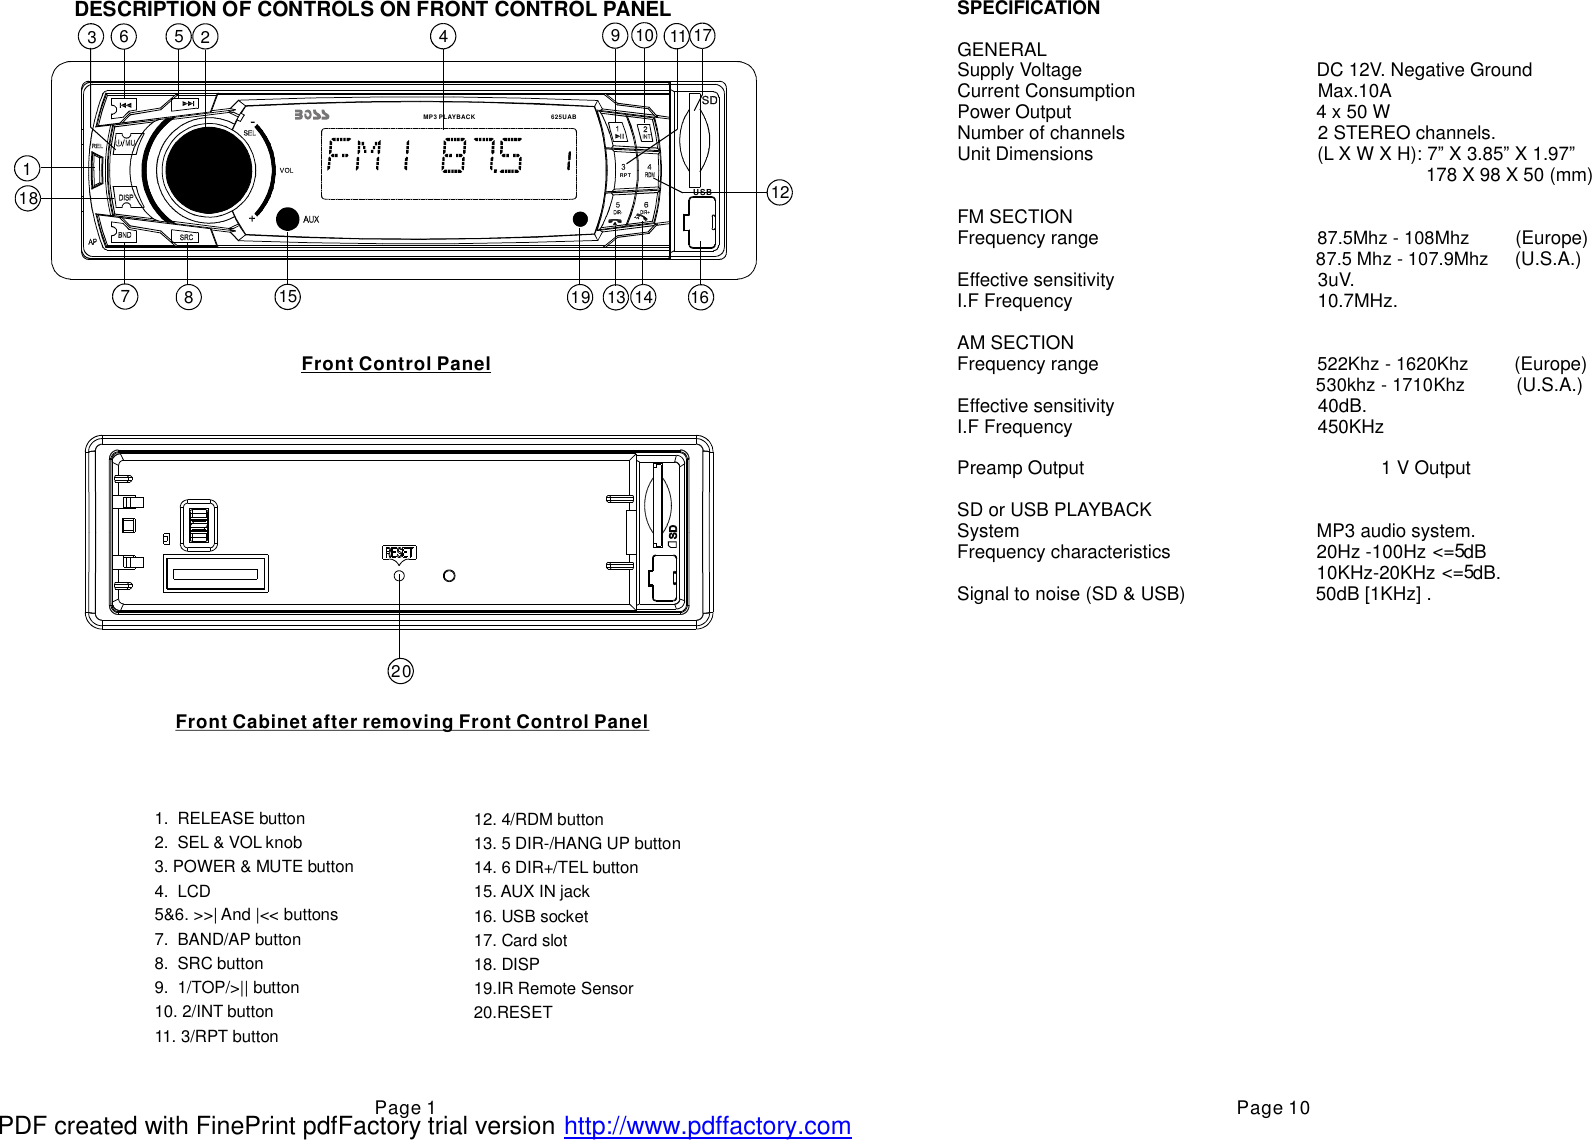 Boss Audio Systems Car Stereo System 625Uab Users Manual 625UAB +0705RUHRF+MP3+WMA...UserManual.wiki